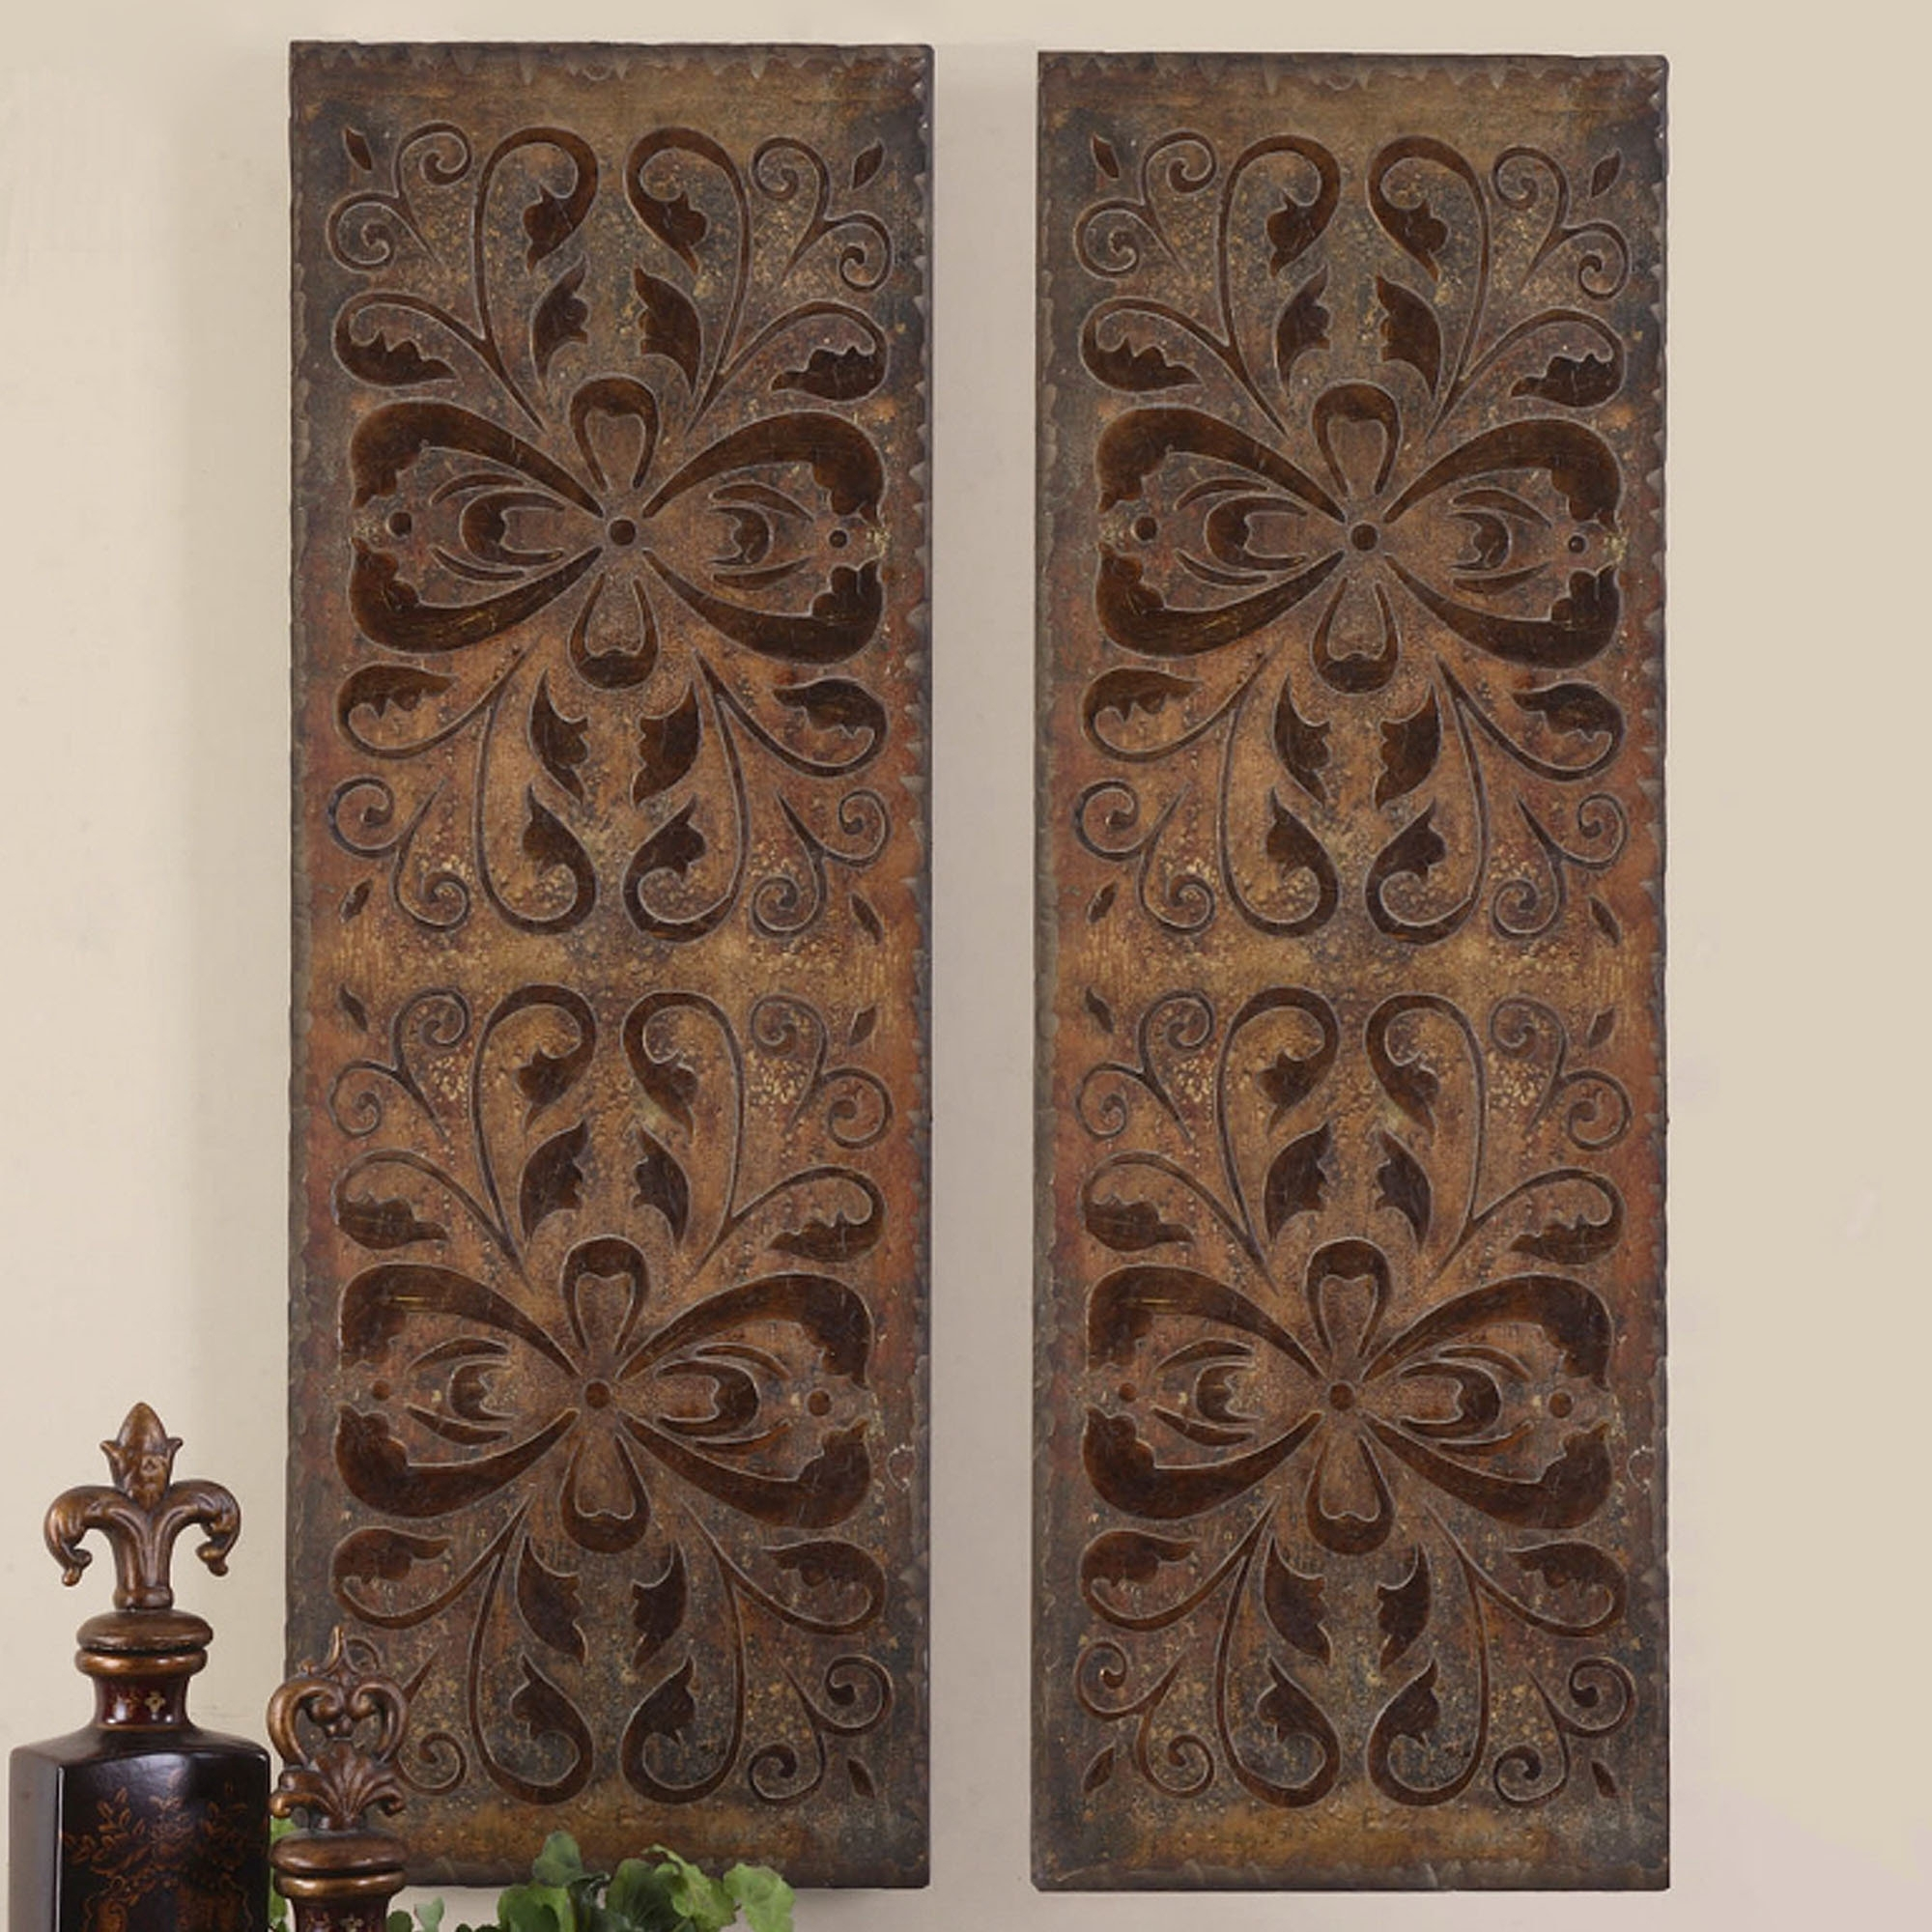 Distressed Wood Panel Wall Decor Wall Art Designs Wall Art Panels Within Most Recent Wall Art Panels (View 4 of 20)